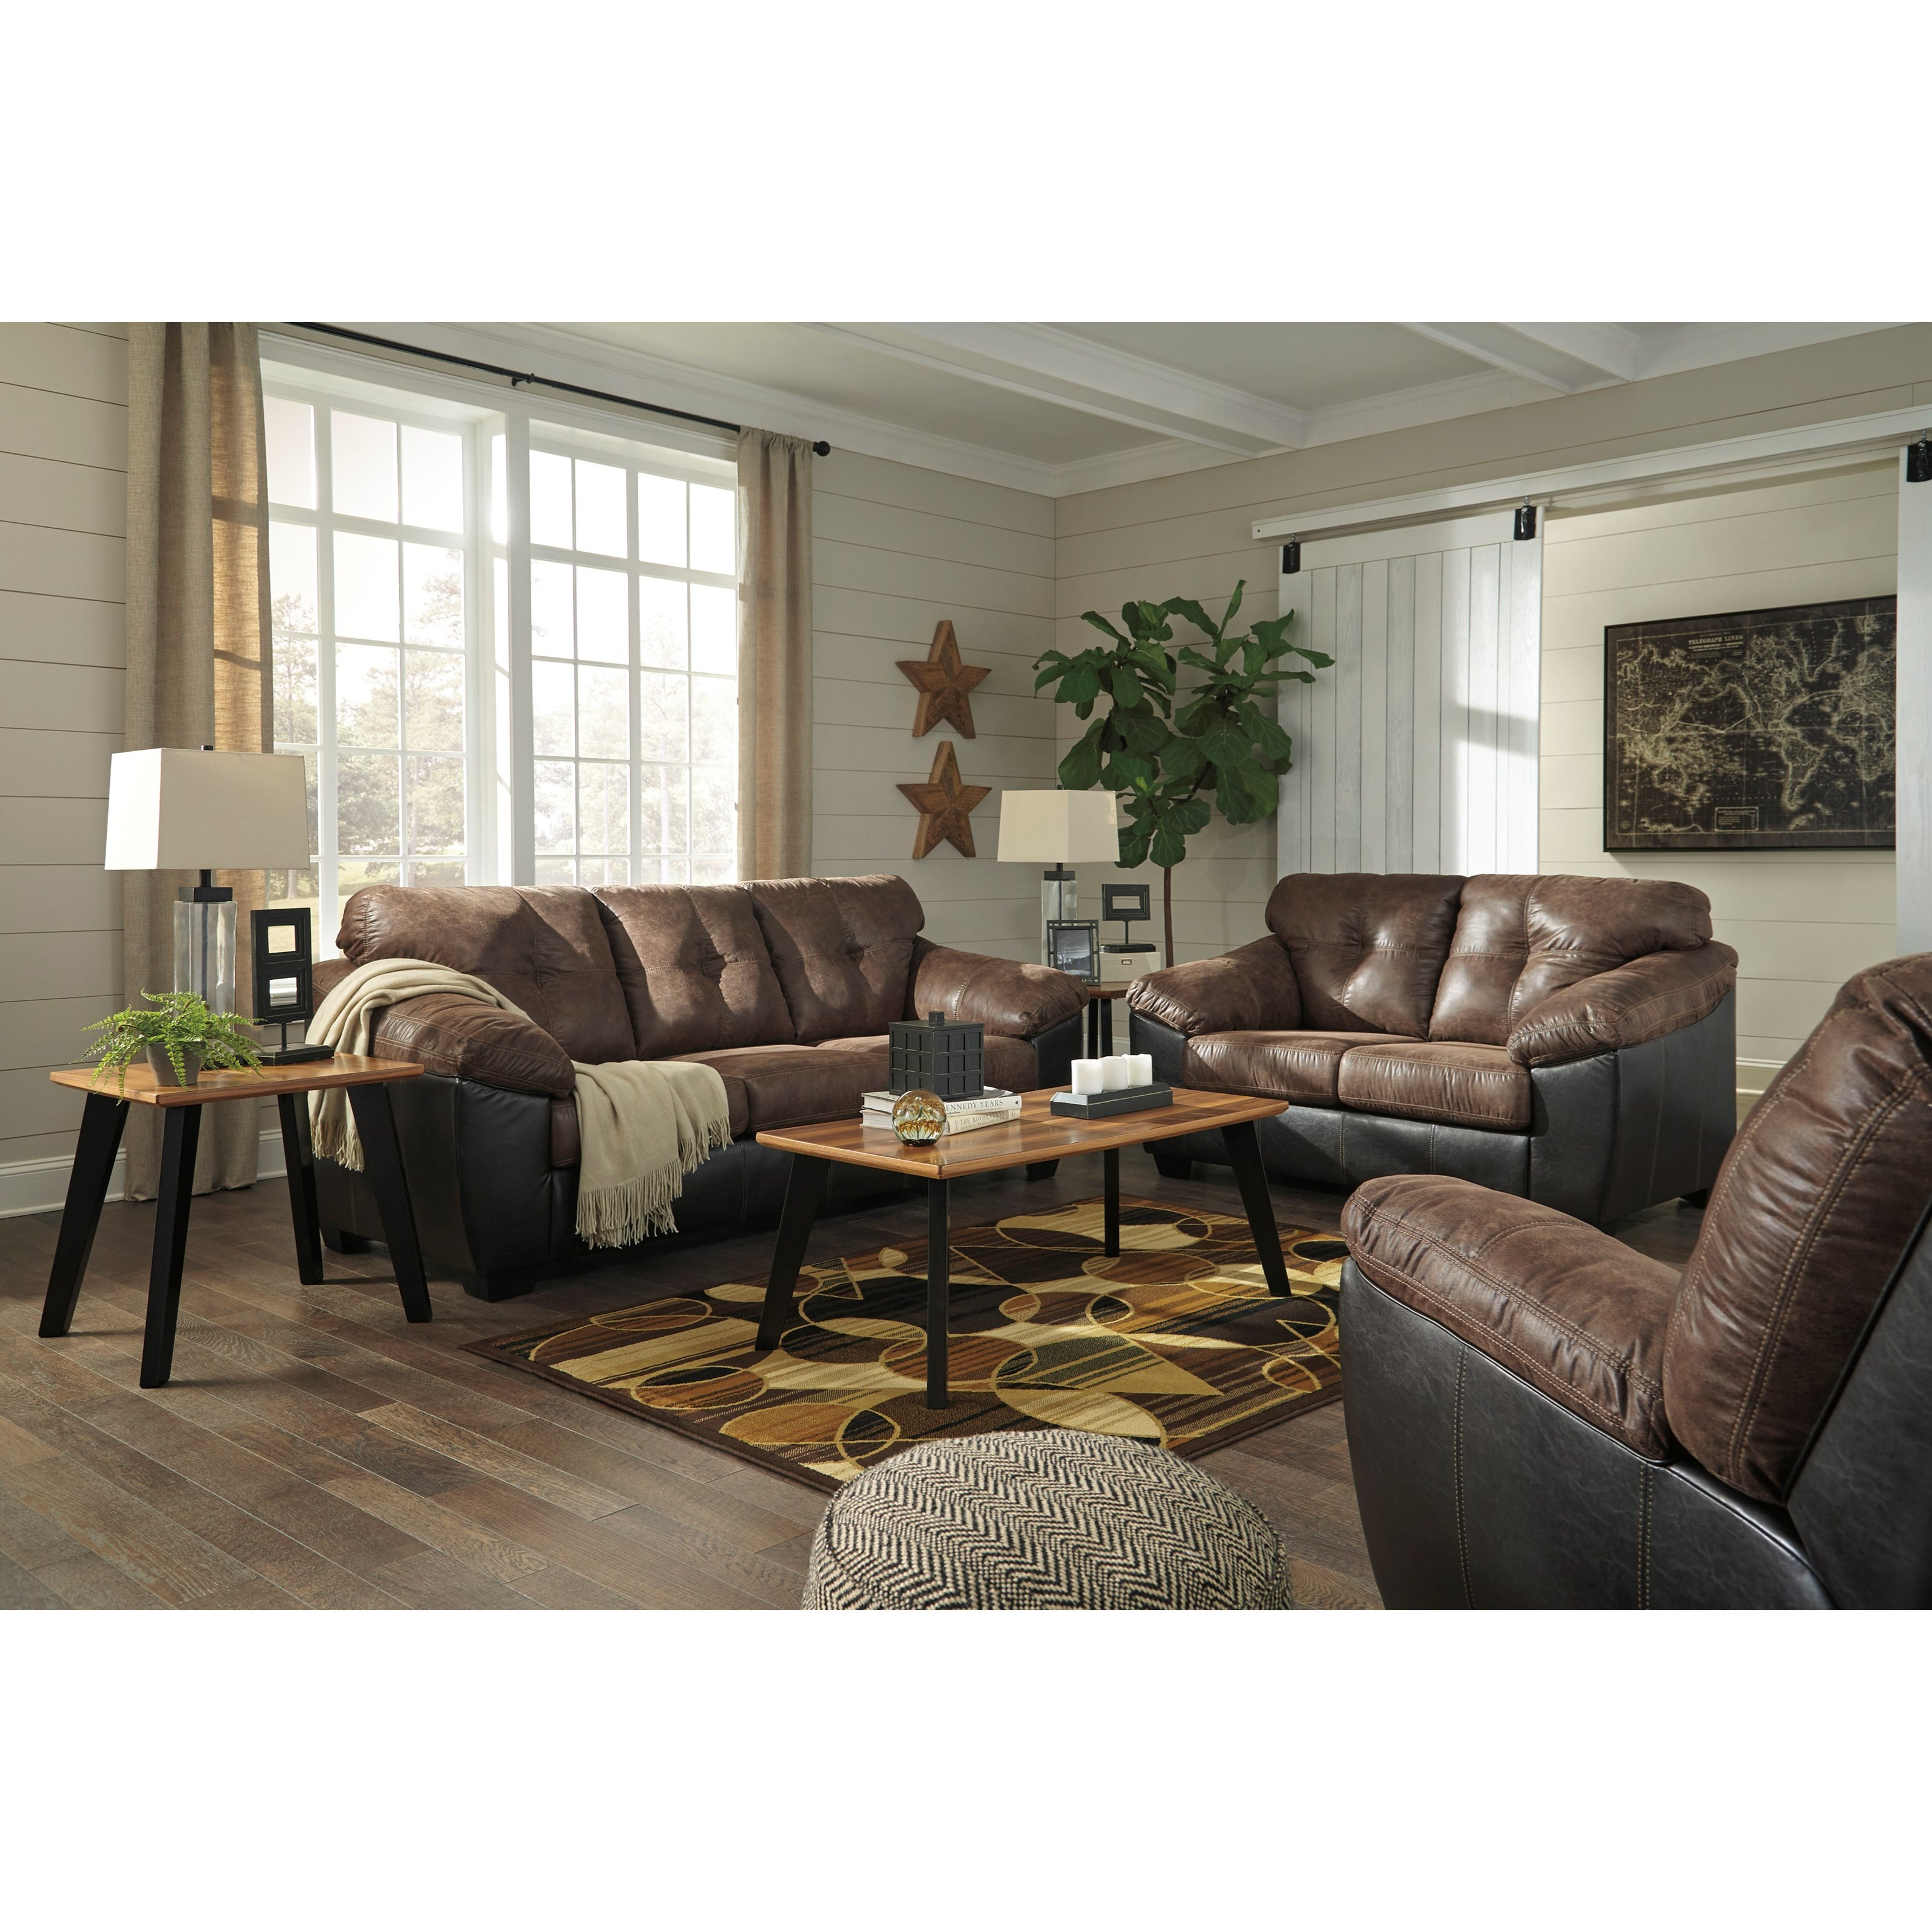 Signature design by ashley gregale stationary living room for Living room furniture groups